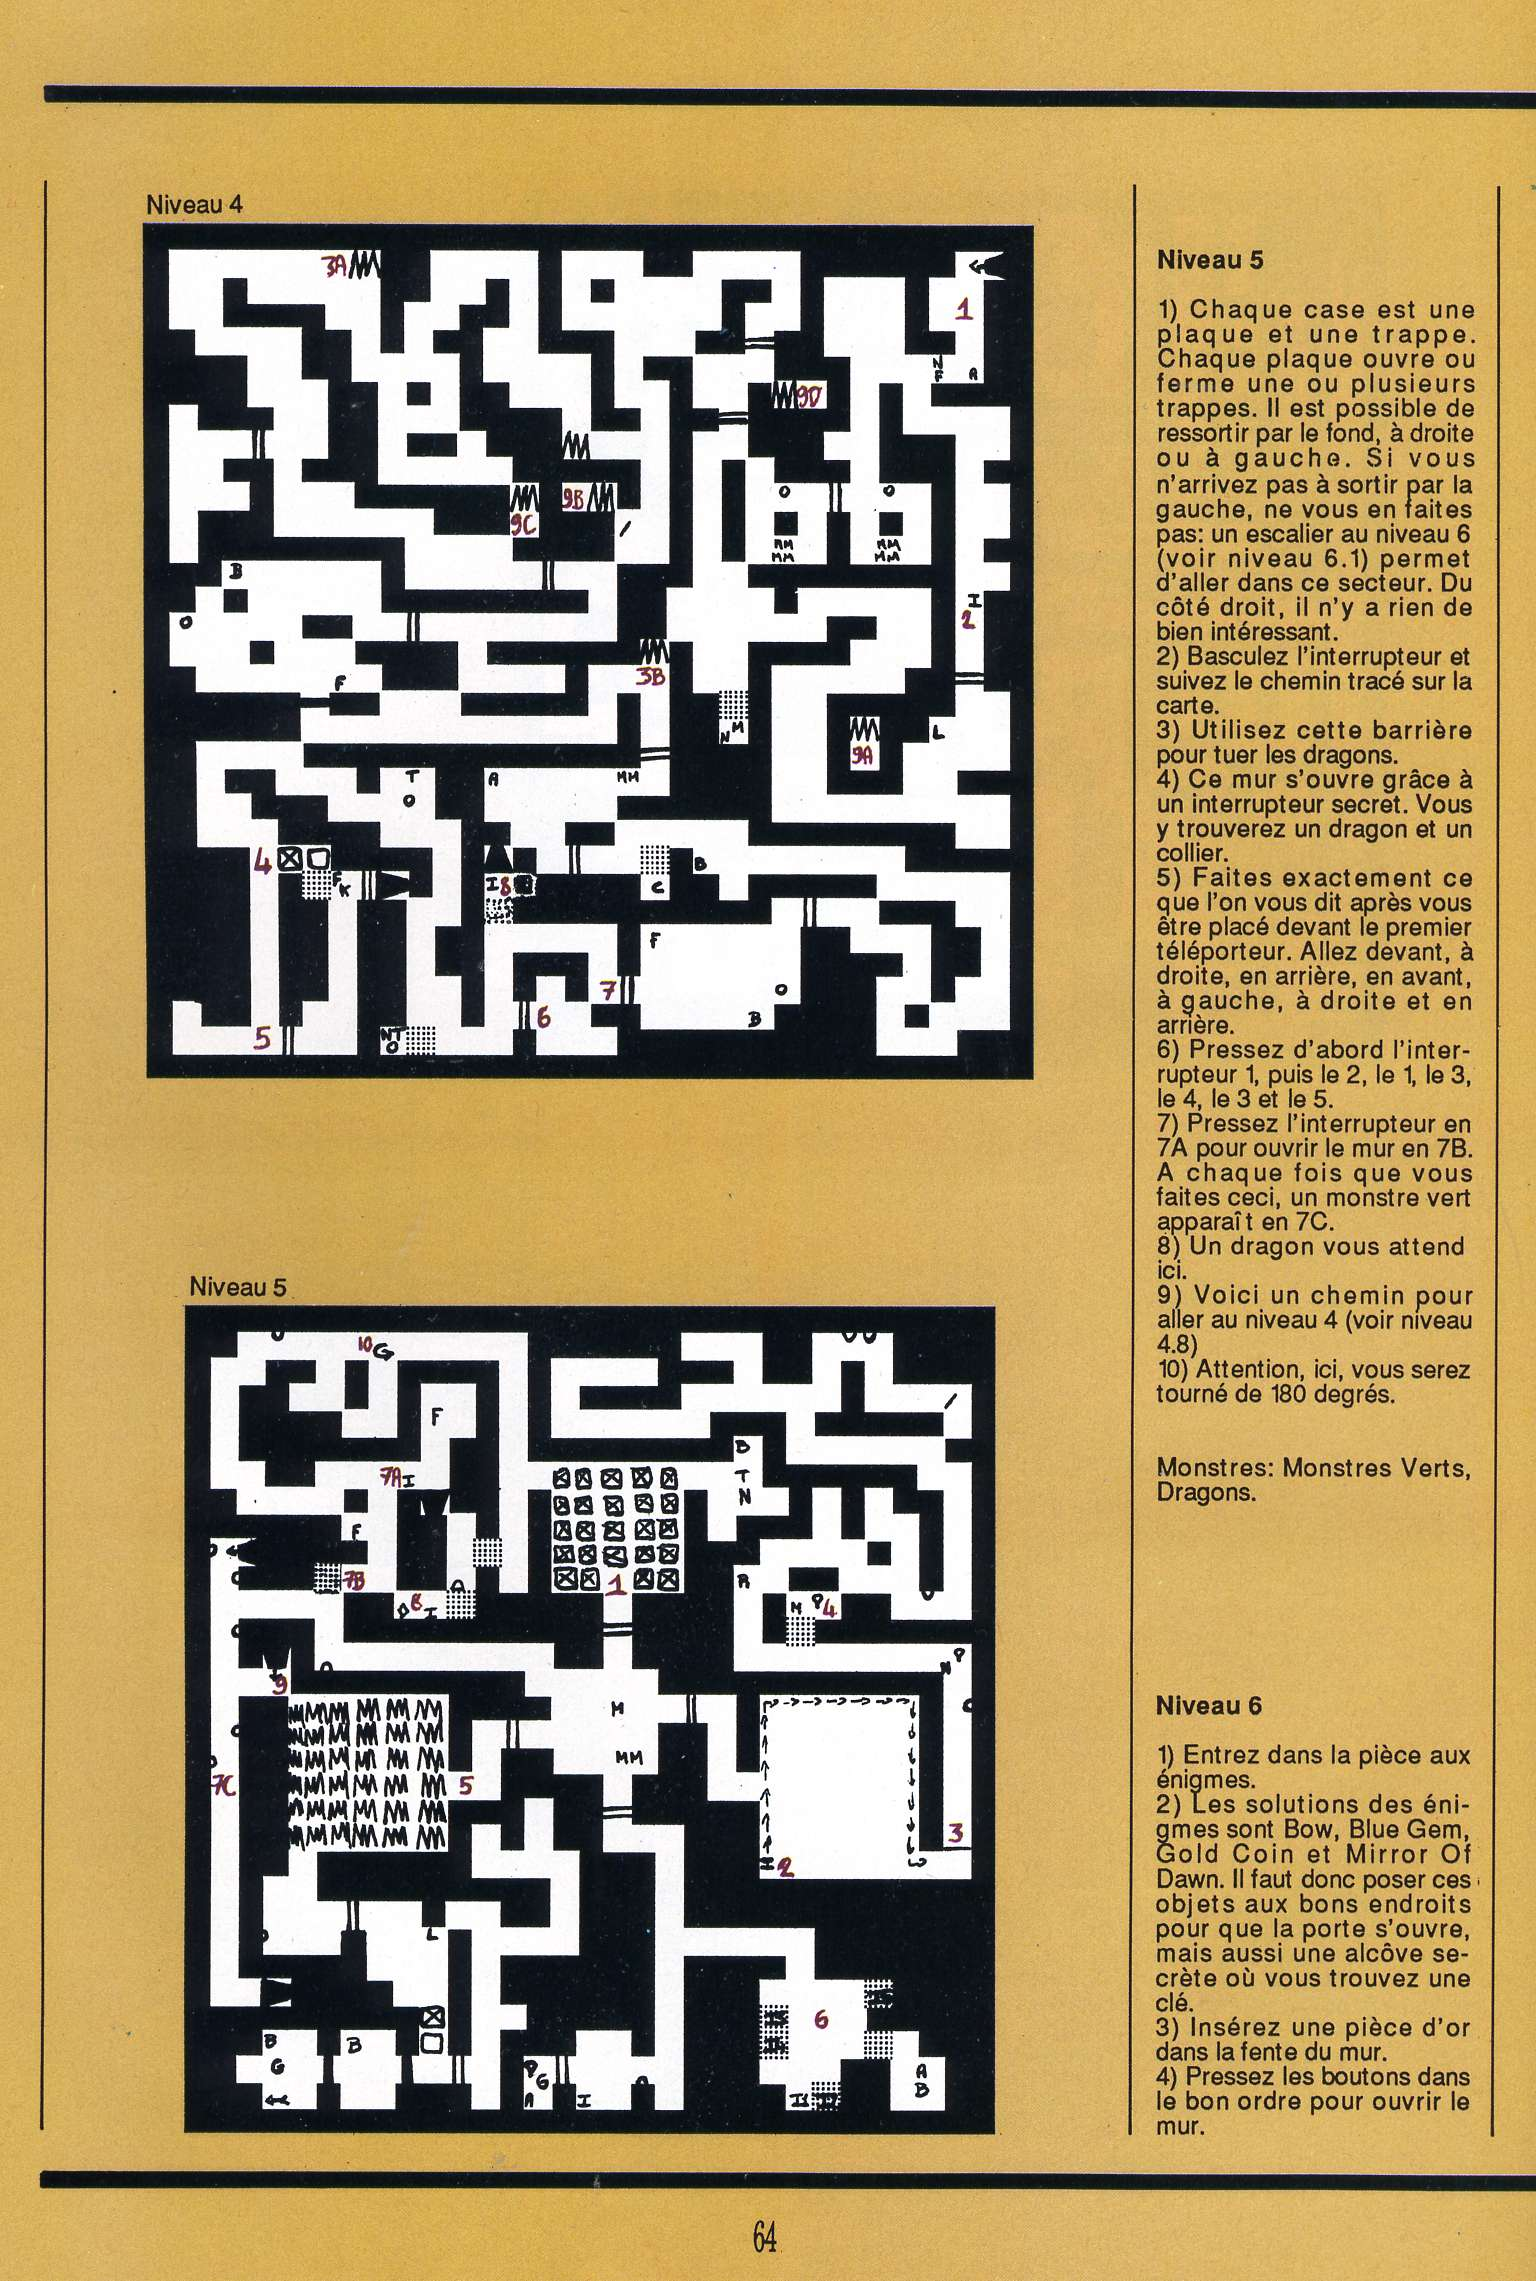 Dungeon Master for Atari ST Guide published in French magazine 'Gen4', Issue #9, March 1989, Page 64